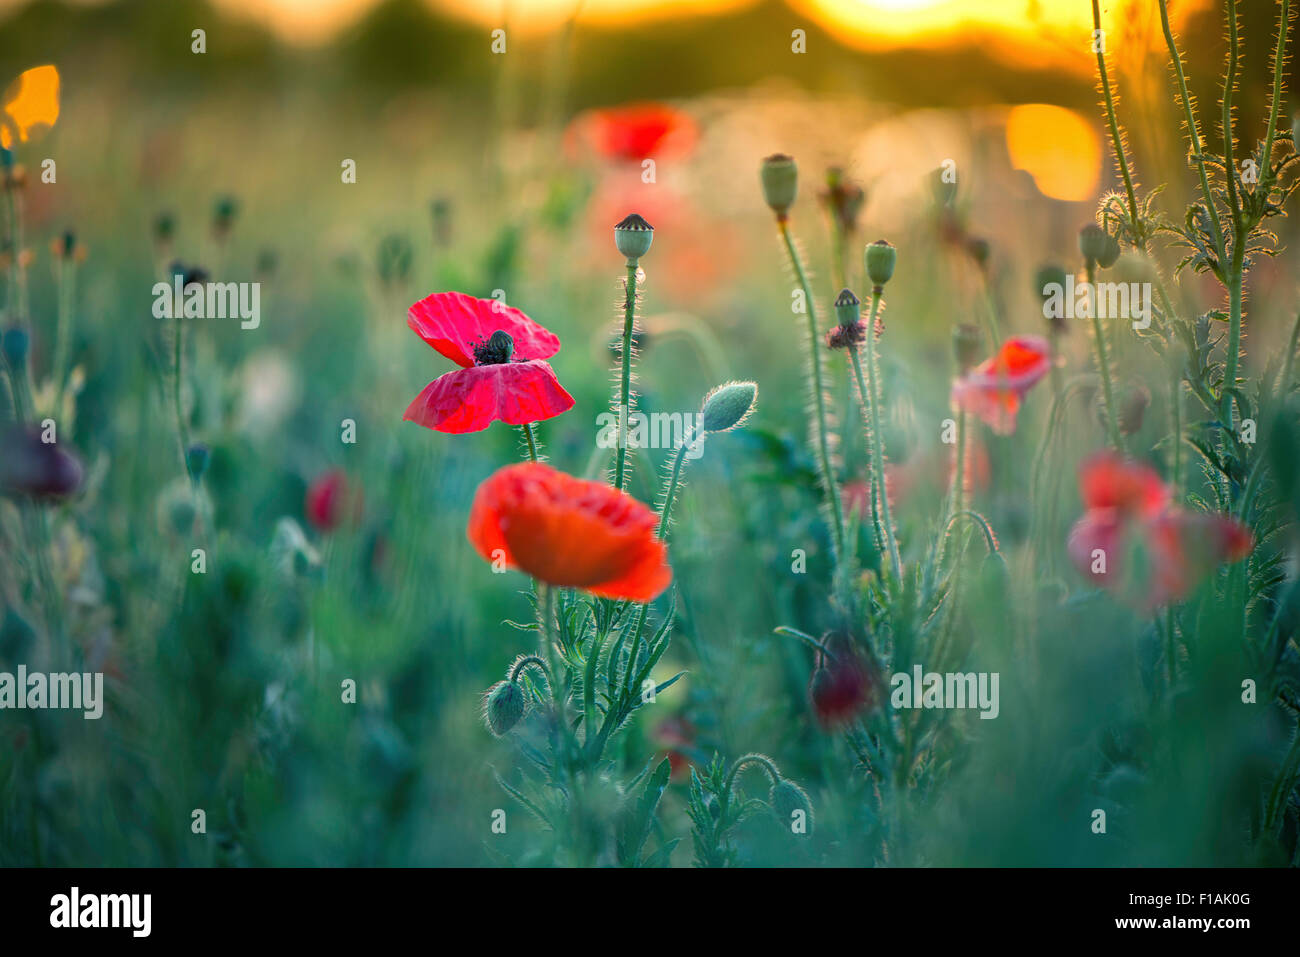 Close up of red poppy flowers - Stock Image